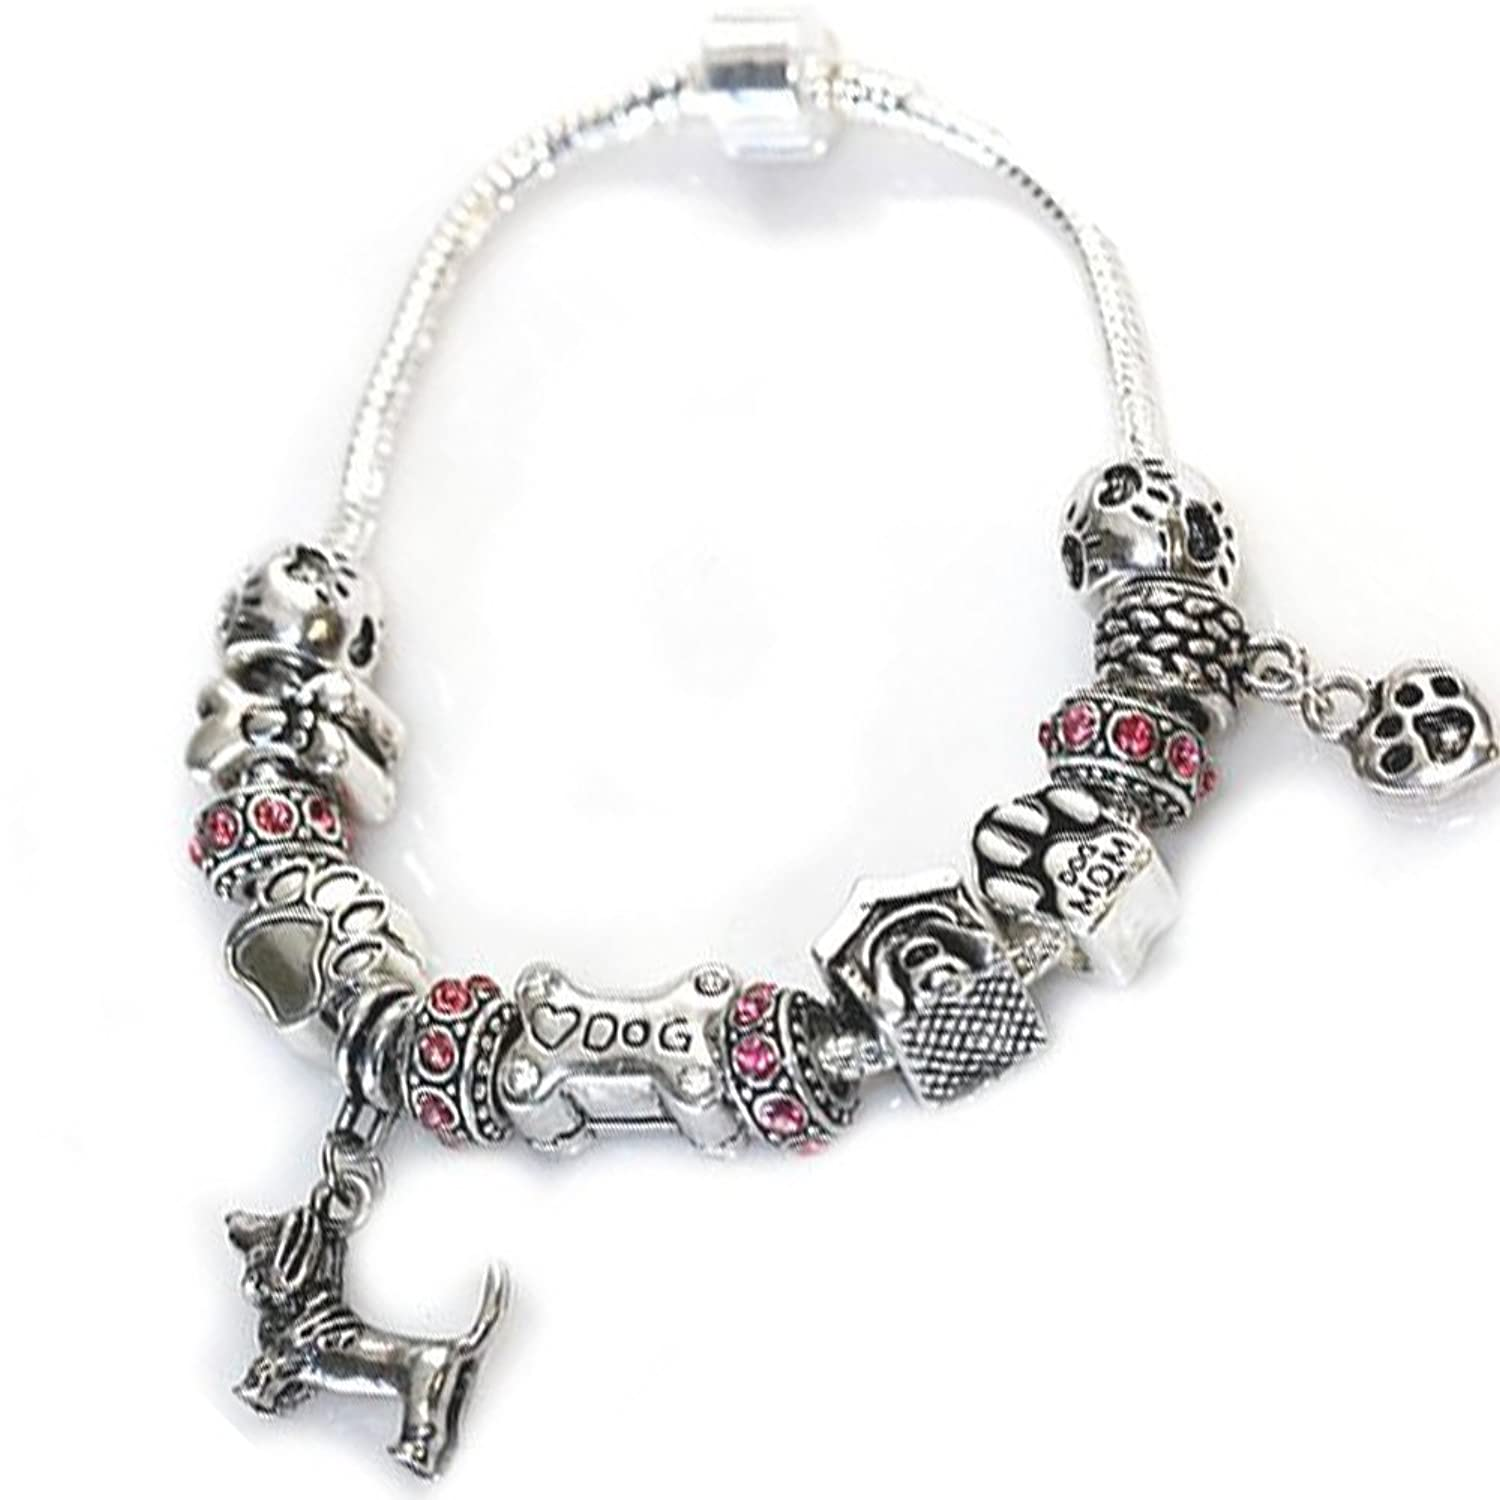 club claire cuddle s bracelet charm us